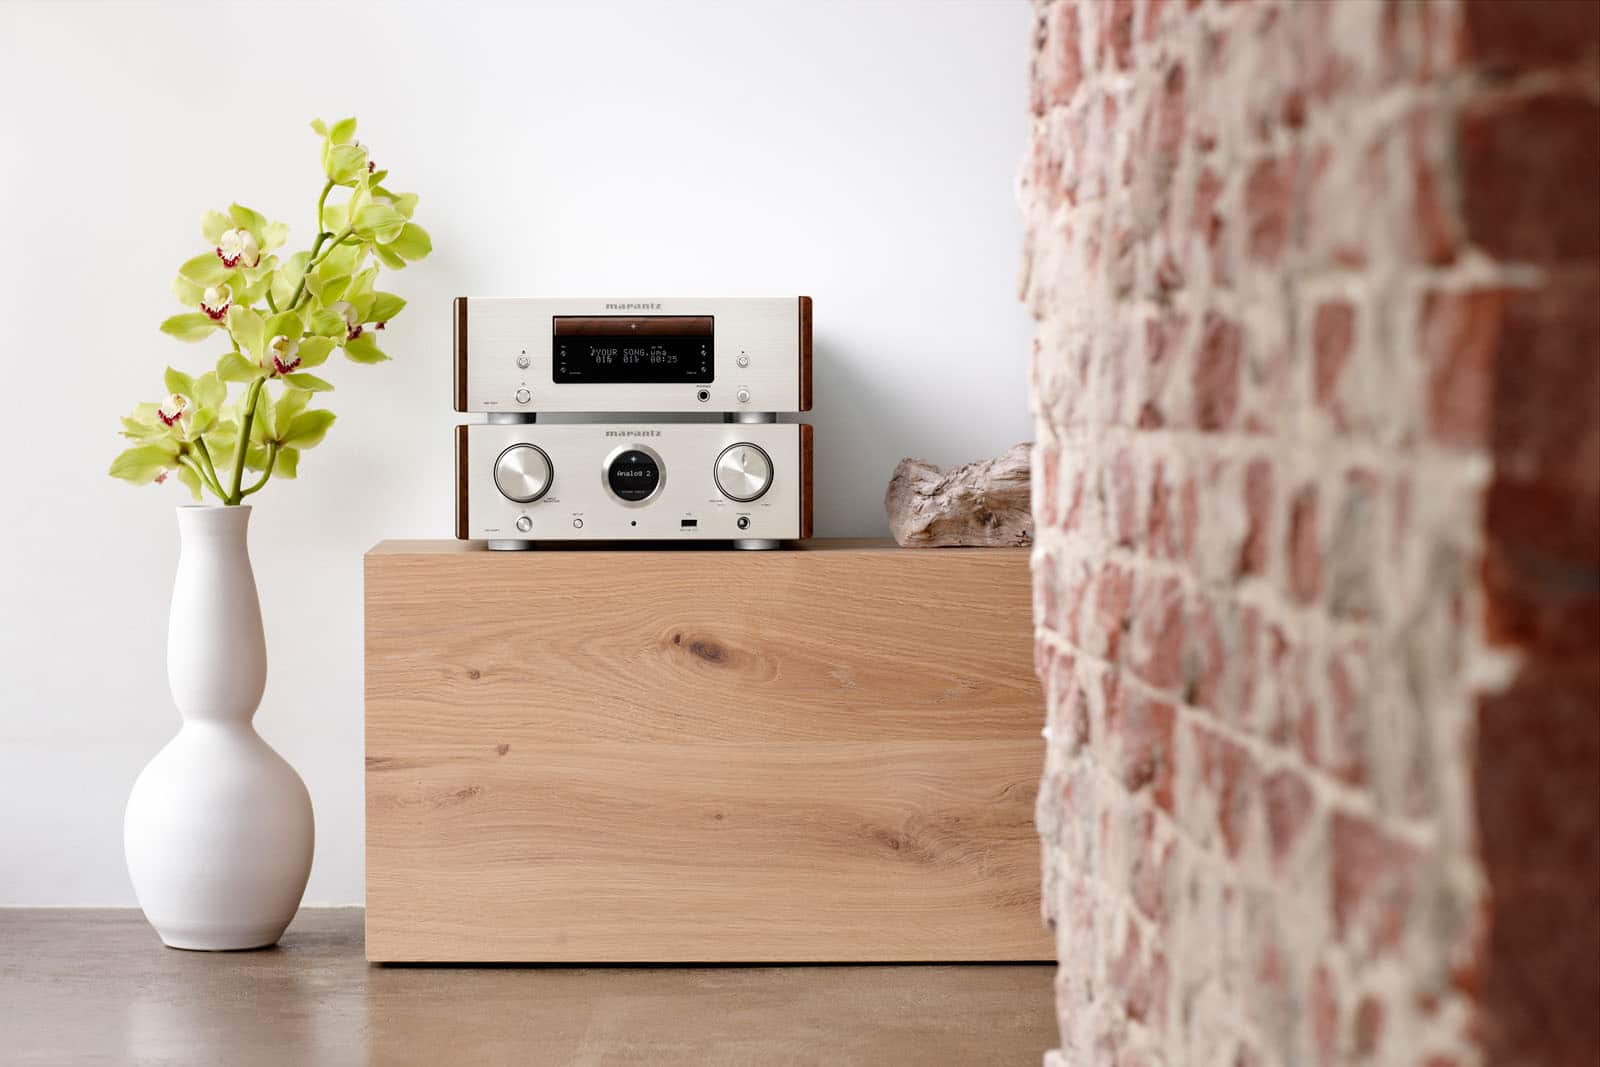 160305-MARANTZ-HD_AMP1-HD_CD1-SG_EU-lifestyle-atmosphere